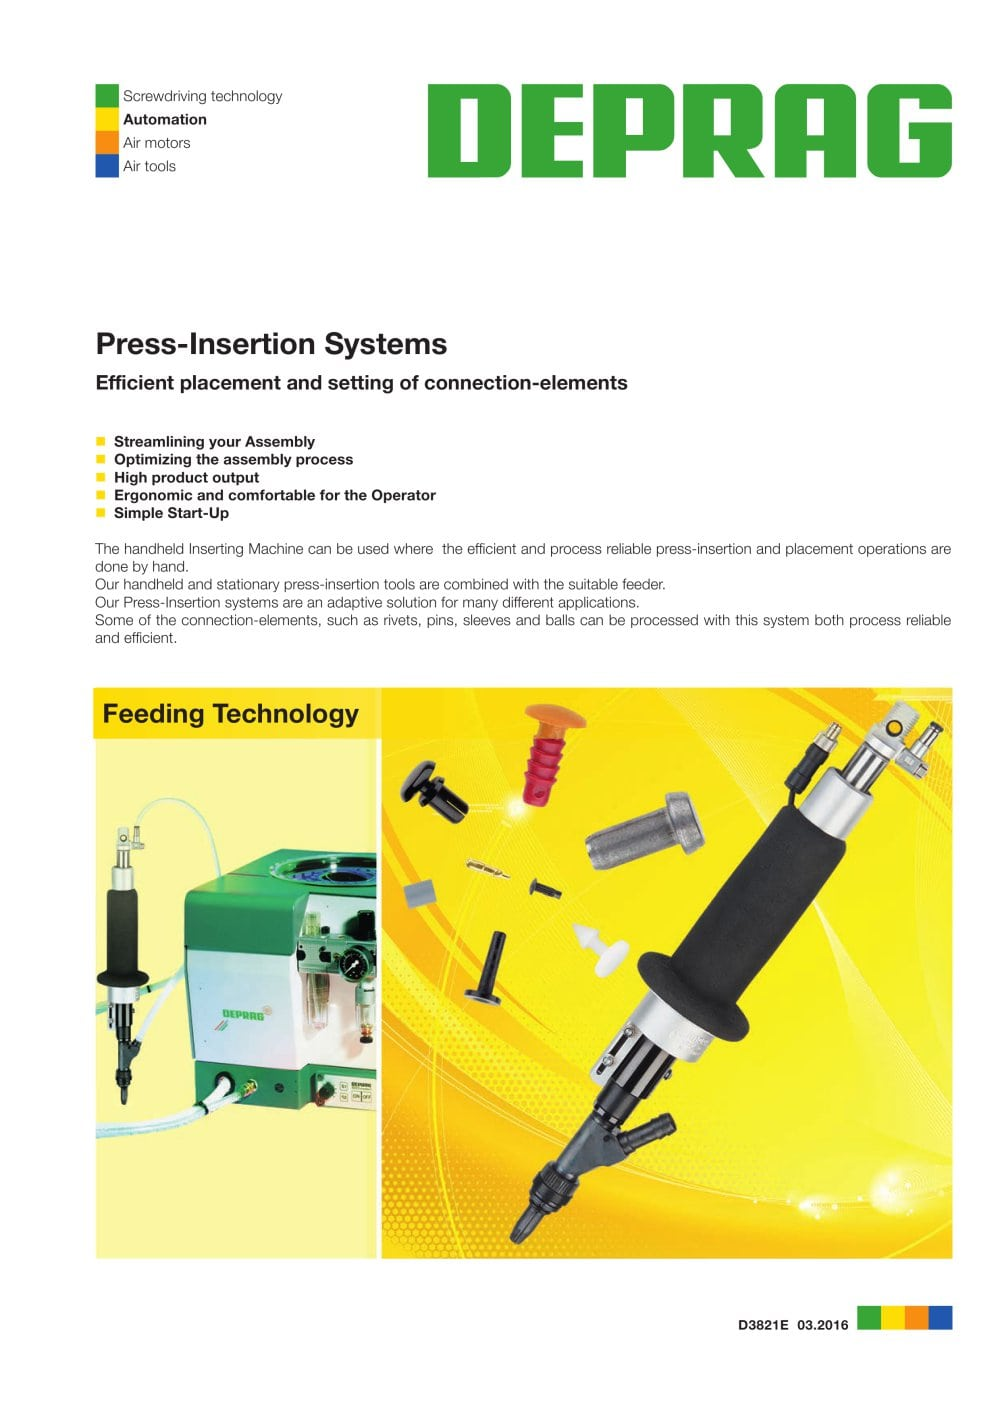 Press-Insertion Systems - 1 / 4 Pages